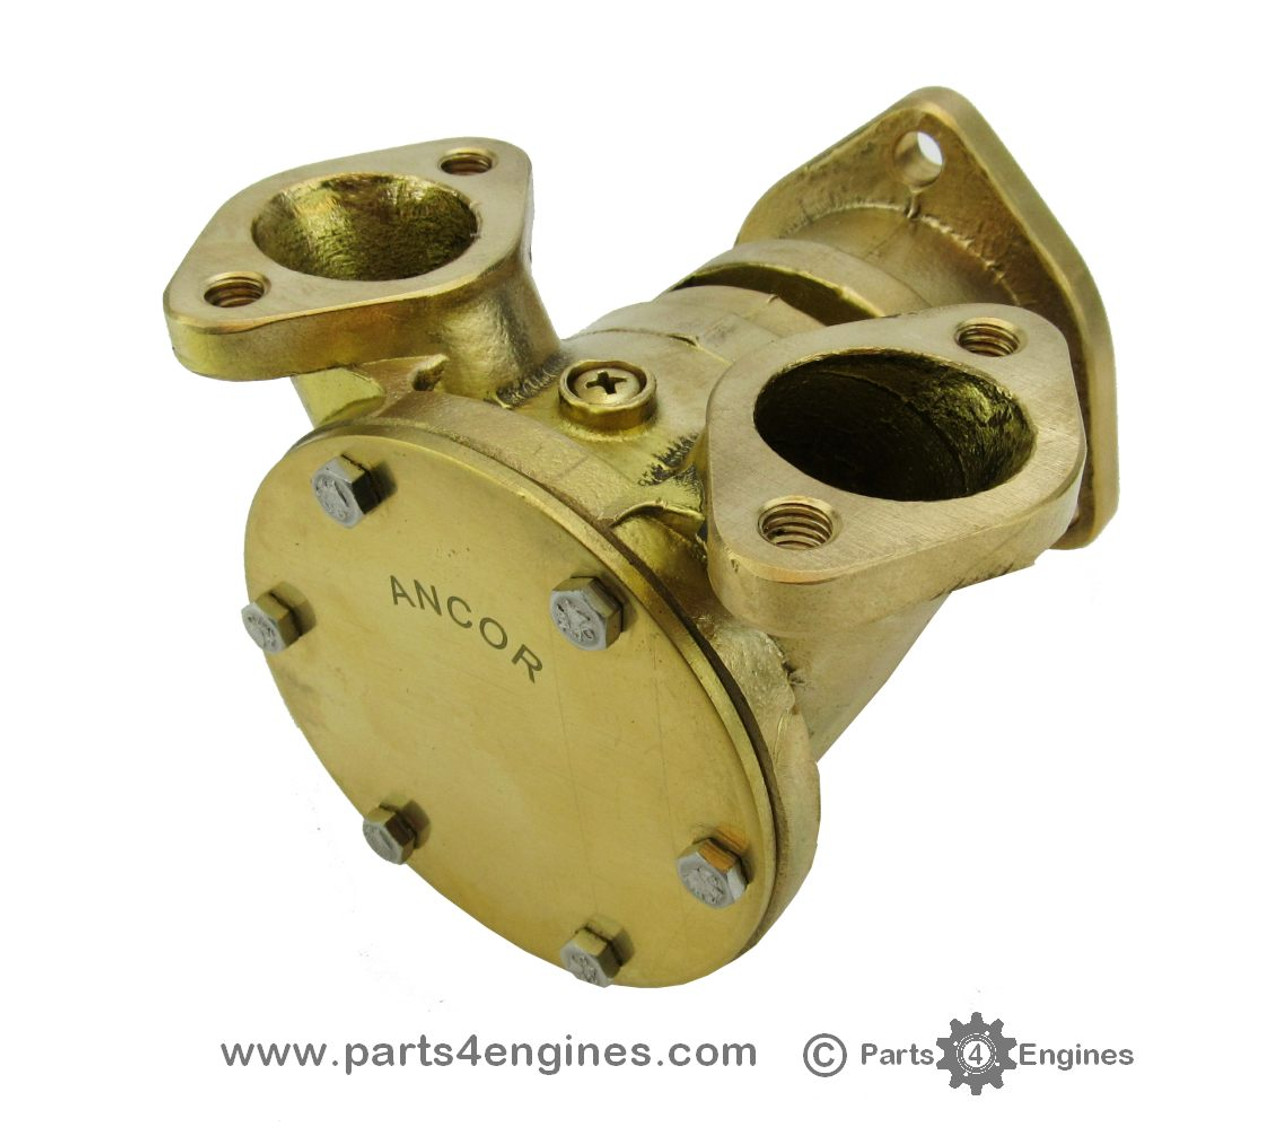 Perkins 6.354 Raw water flange mounted pump - Type 'B' - parts4engines.com